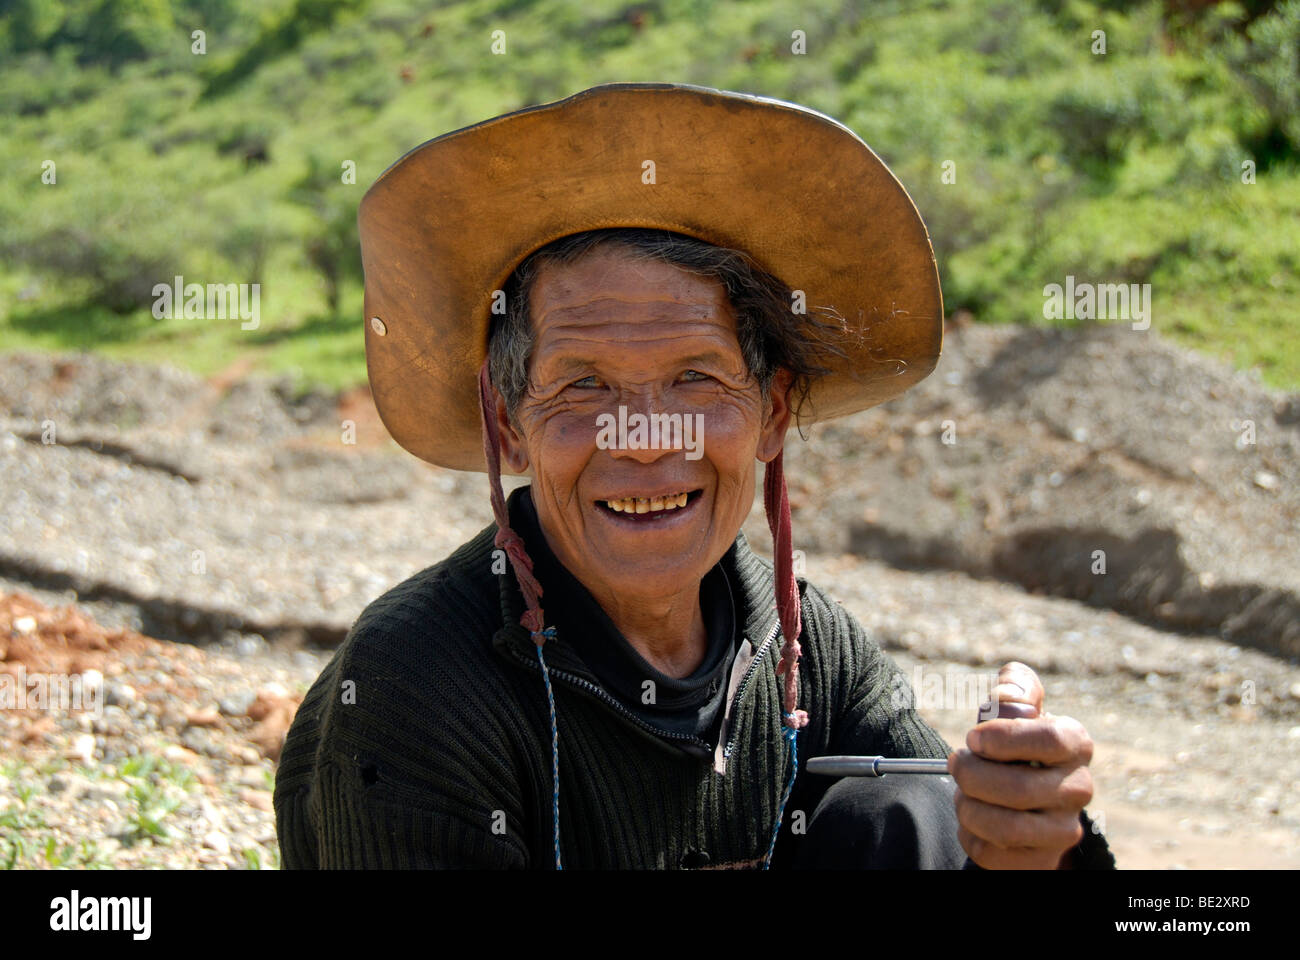 Portrait, ethnology, man of the Mosu ethnicity with hat, smiling and smoking a pipe, Yongning, Lugu Hu Lake area, - Stock Image